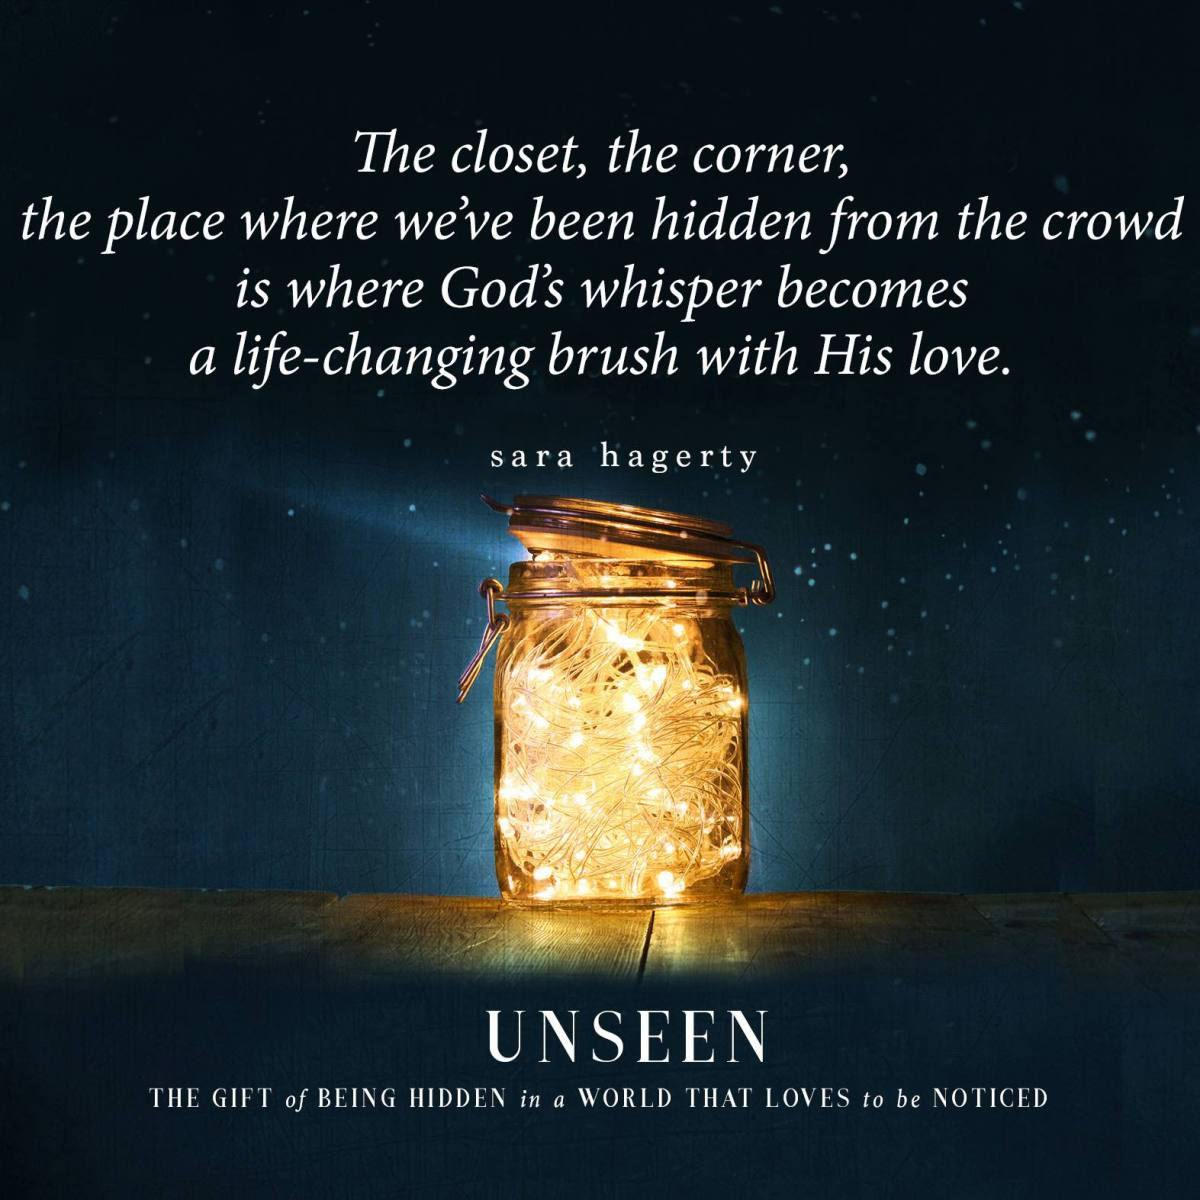 A heartfelt review of a heart-oriented book, UNSEEN, by Sara Hagerty